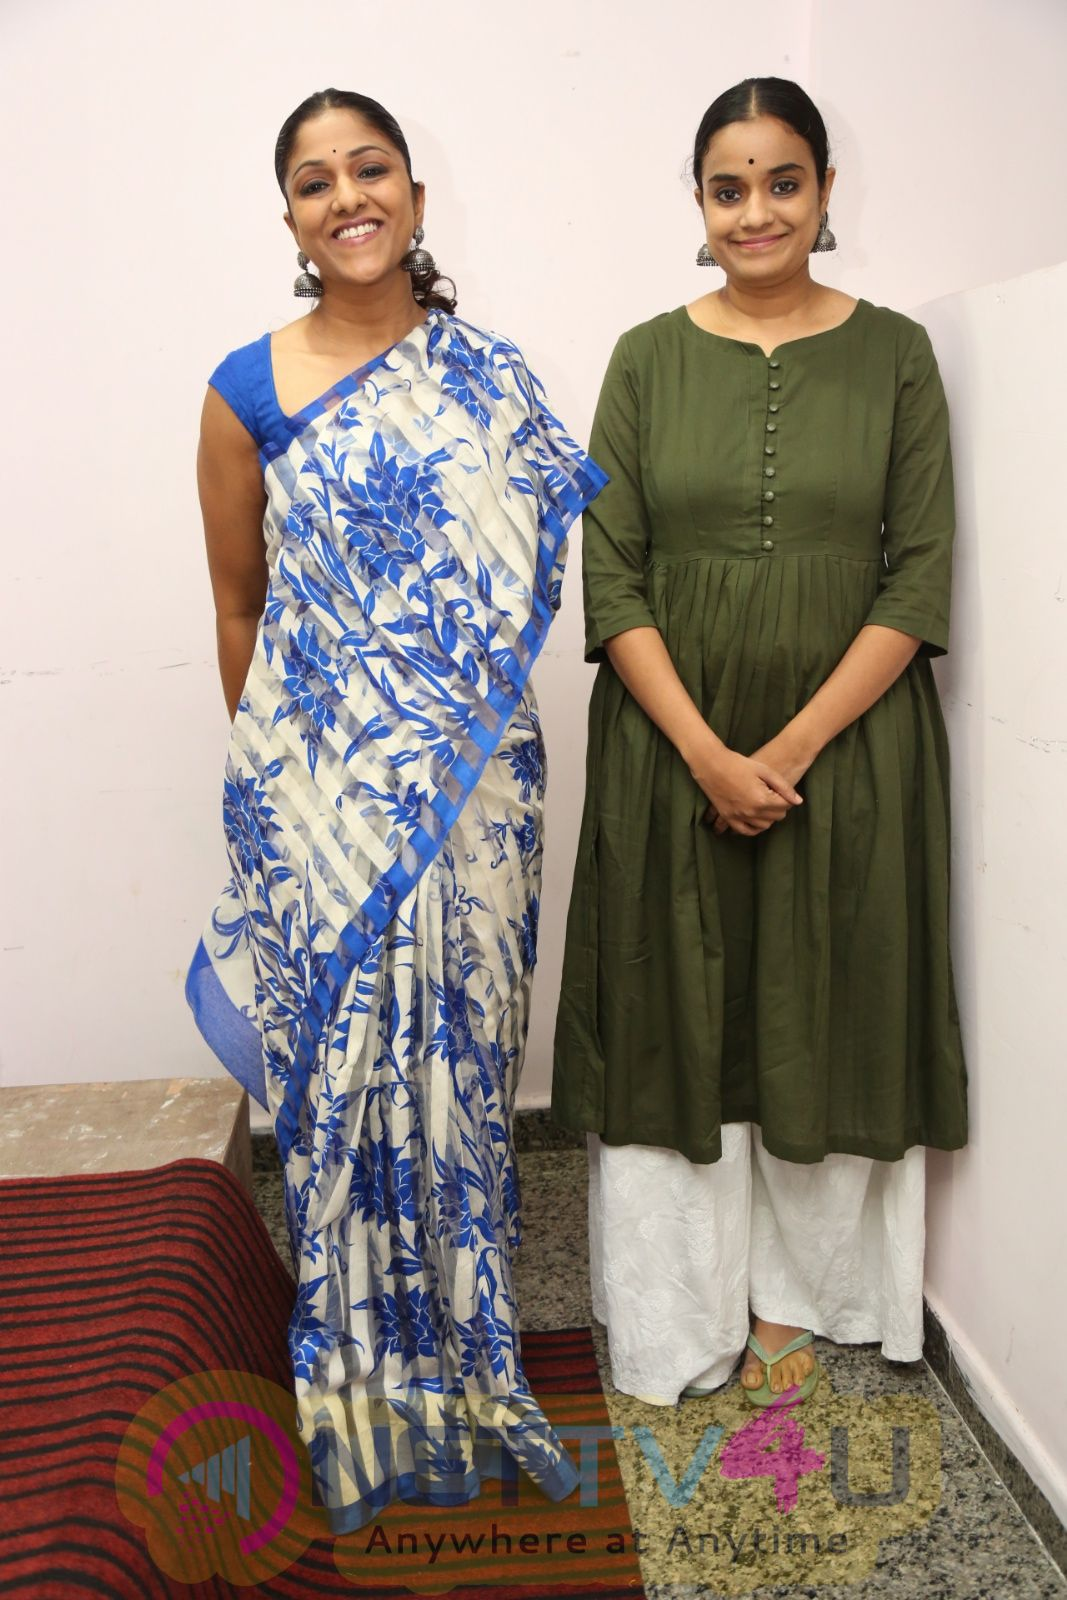 Producers Swapna Dutt & Priyanka Dutt Lovely Images